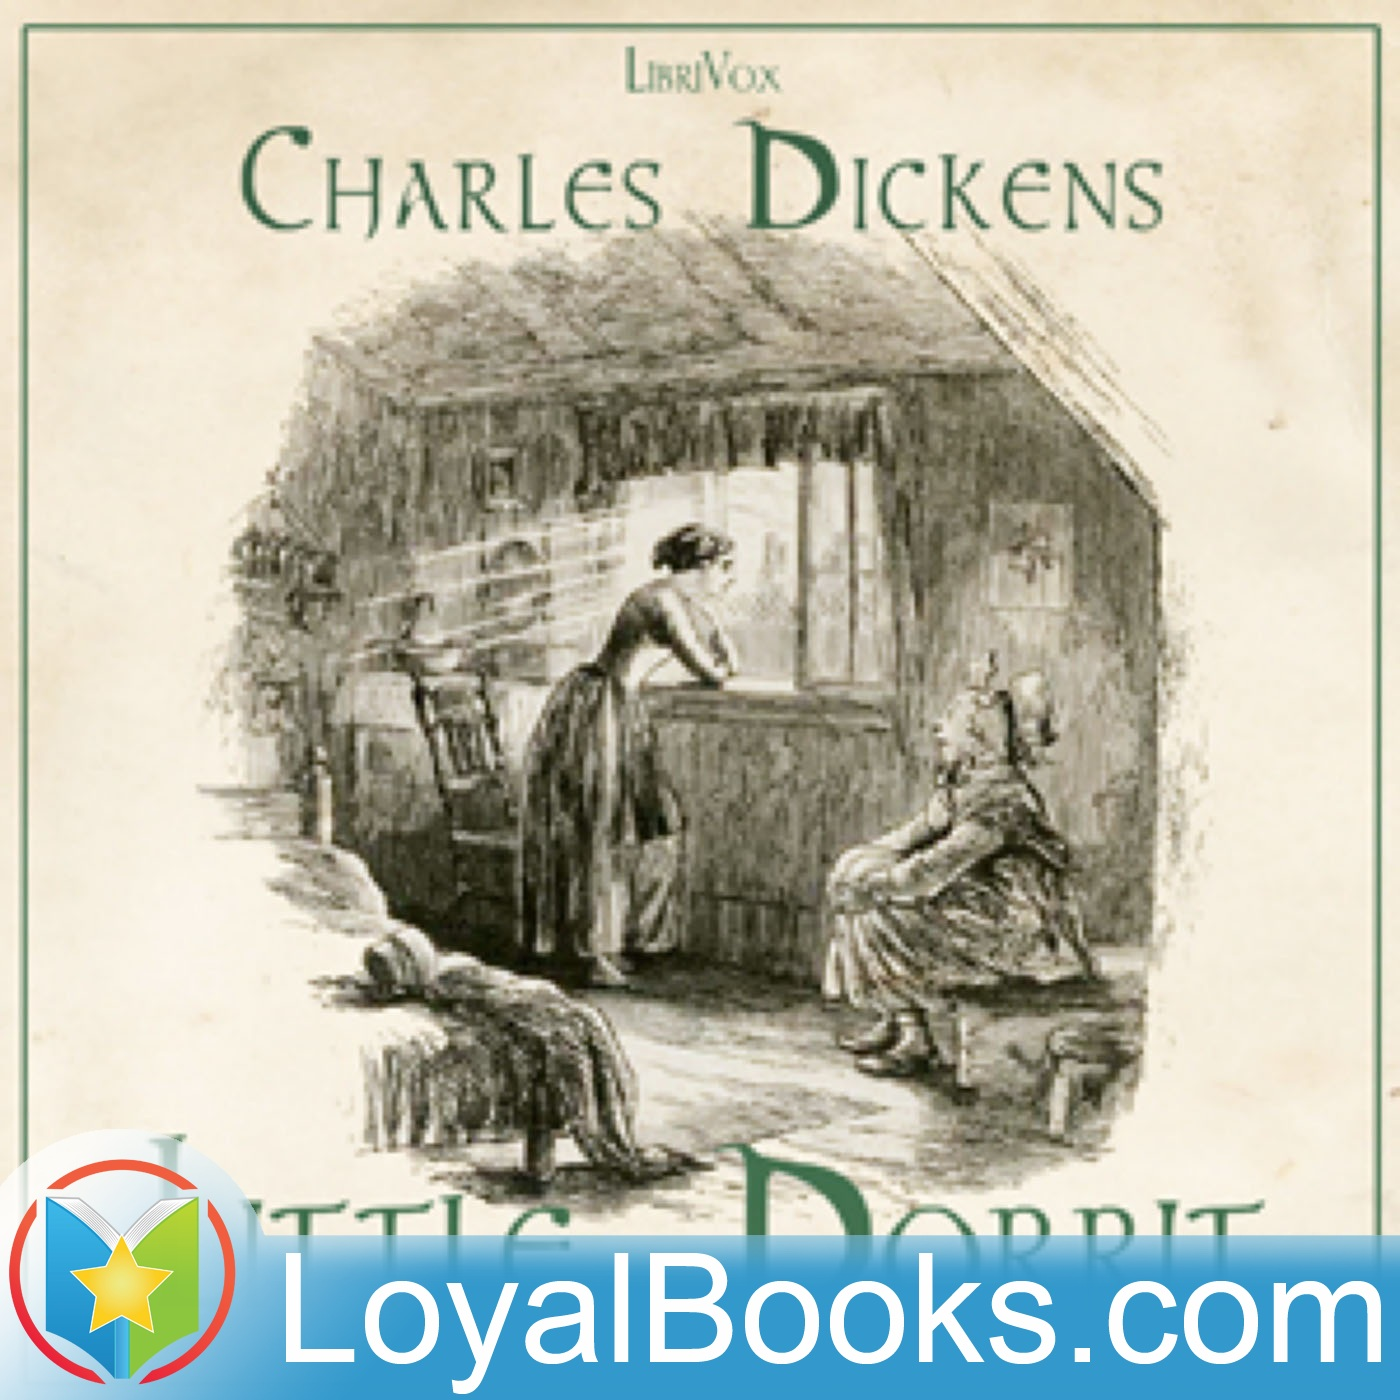 <![CDATA[Little Dorrit by Charles Dickens]]>